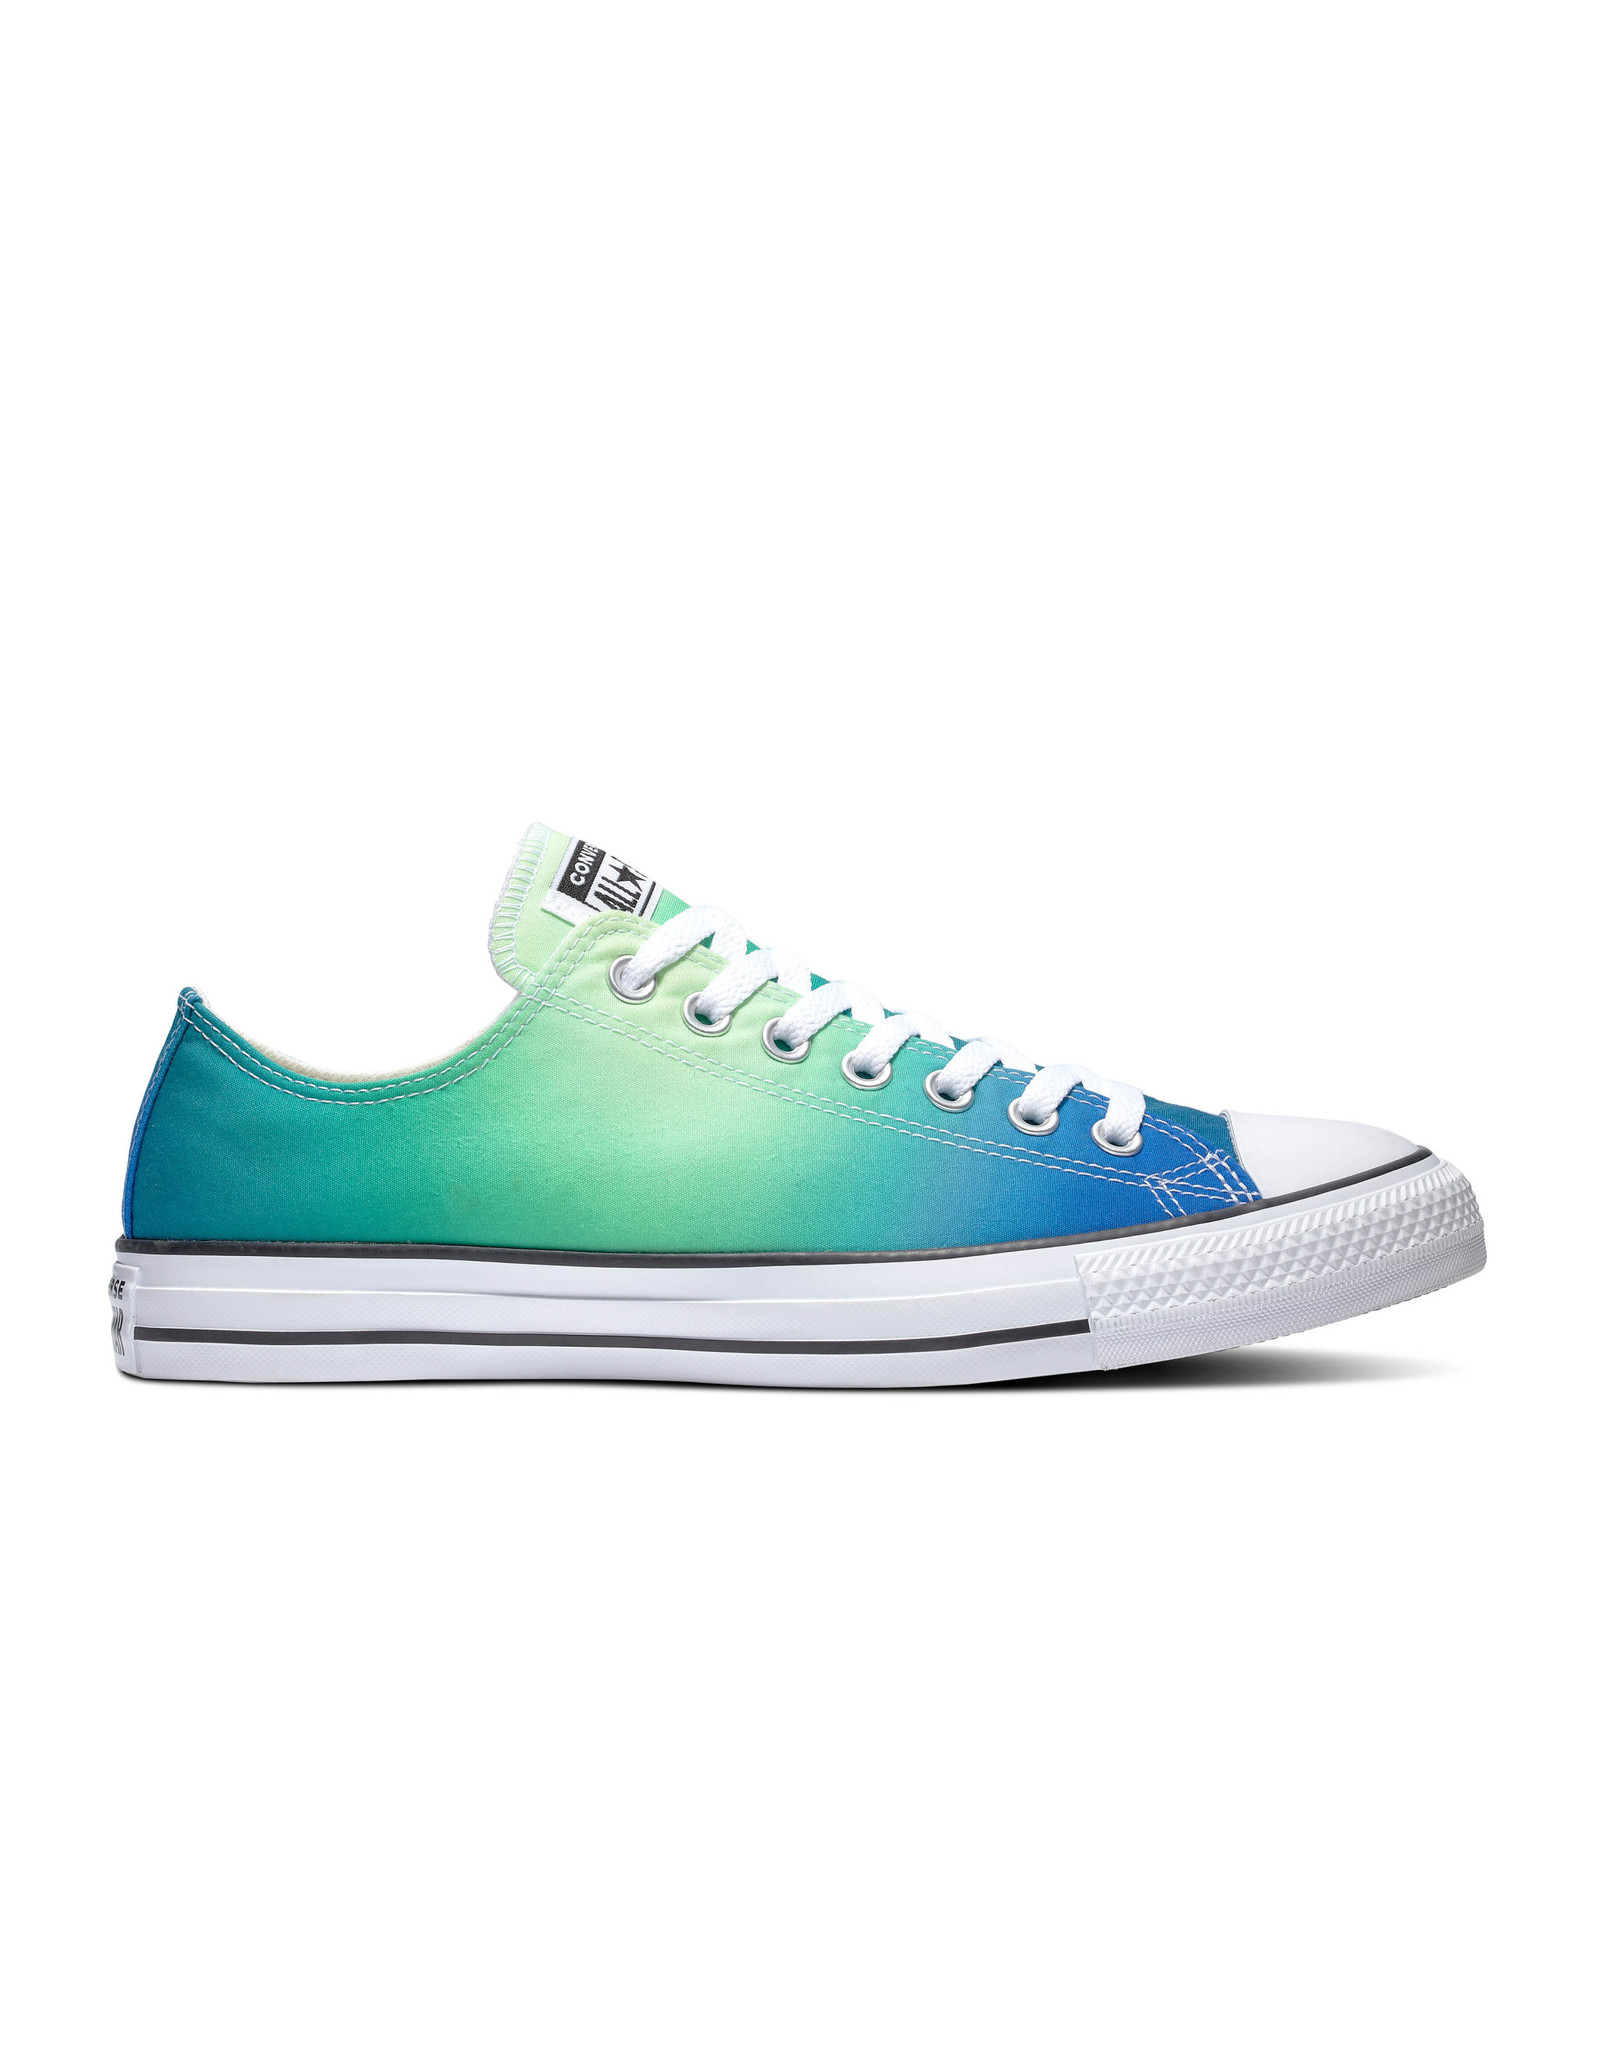 CONVERSE CHUCK TAYLOR OX GAME ROYAL/MALACHITE/WHITE C14GAME-167596C